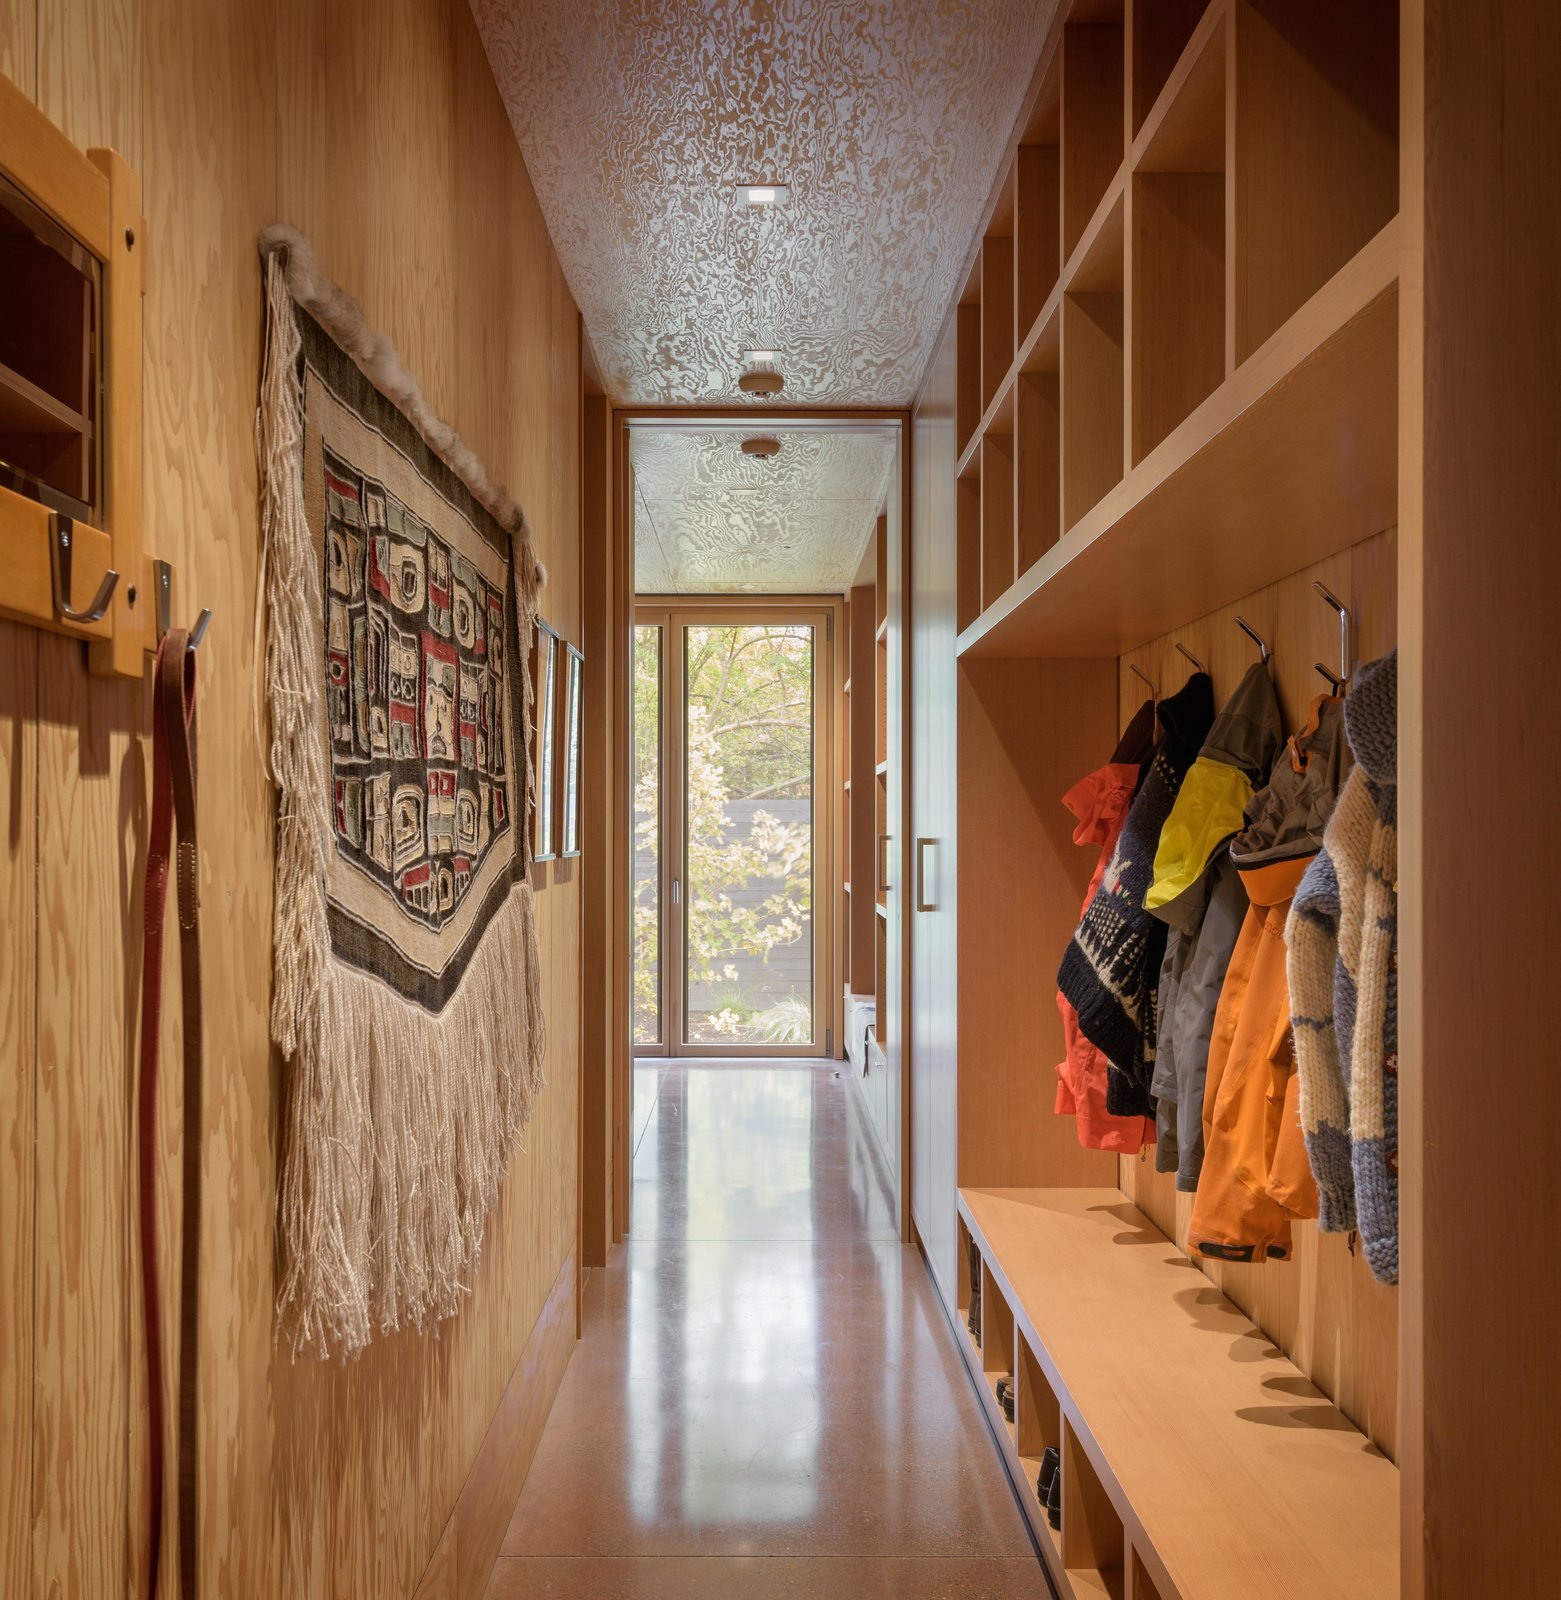 Hallway and Concrete Floor City Cabin   Olson Kundig  Photo 10 of 13 in Immersed in Nature, This City Cabin Targets Net-Zero Energy from City Cabin